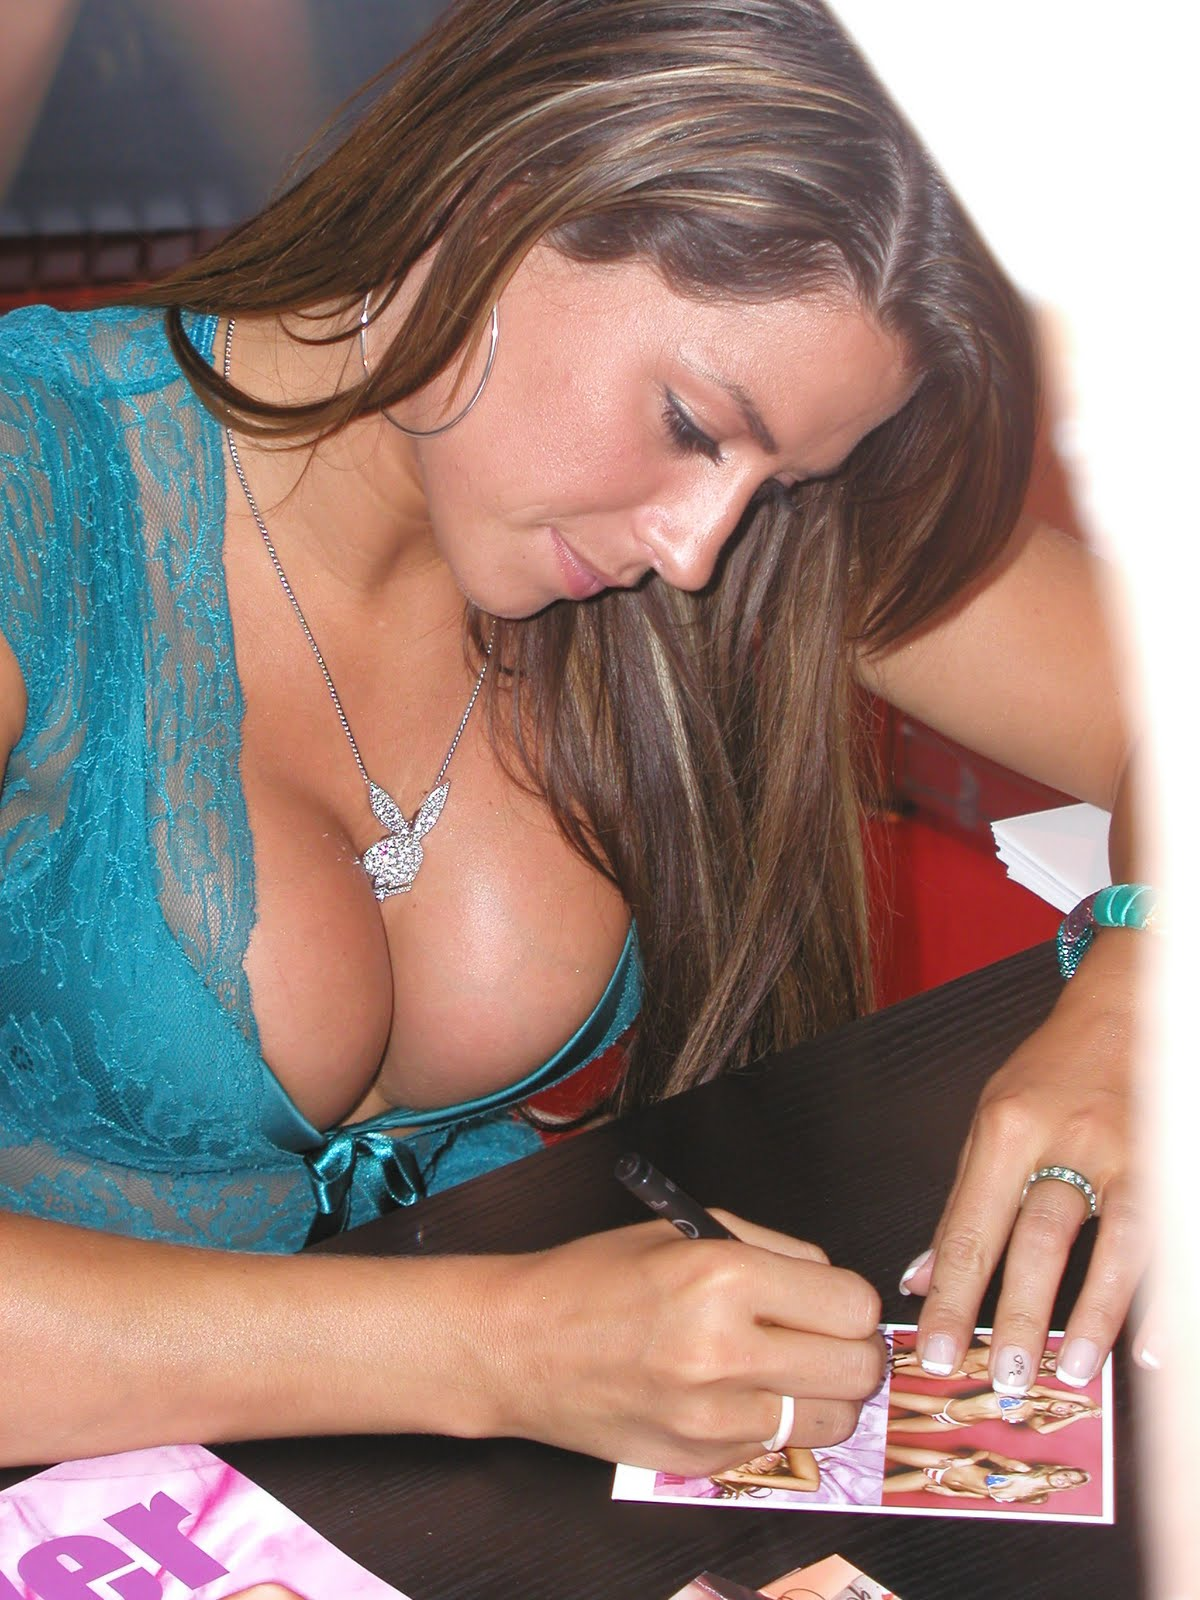 DIRTY MIND'S DELIGHT: Louise Glover is hot.